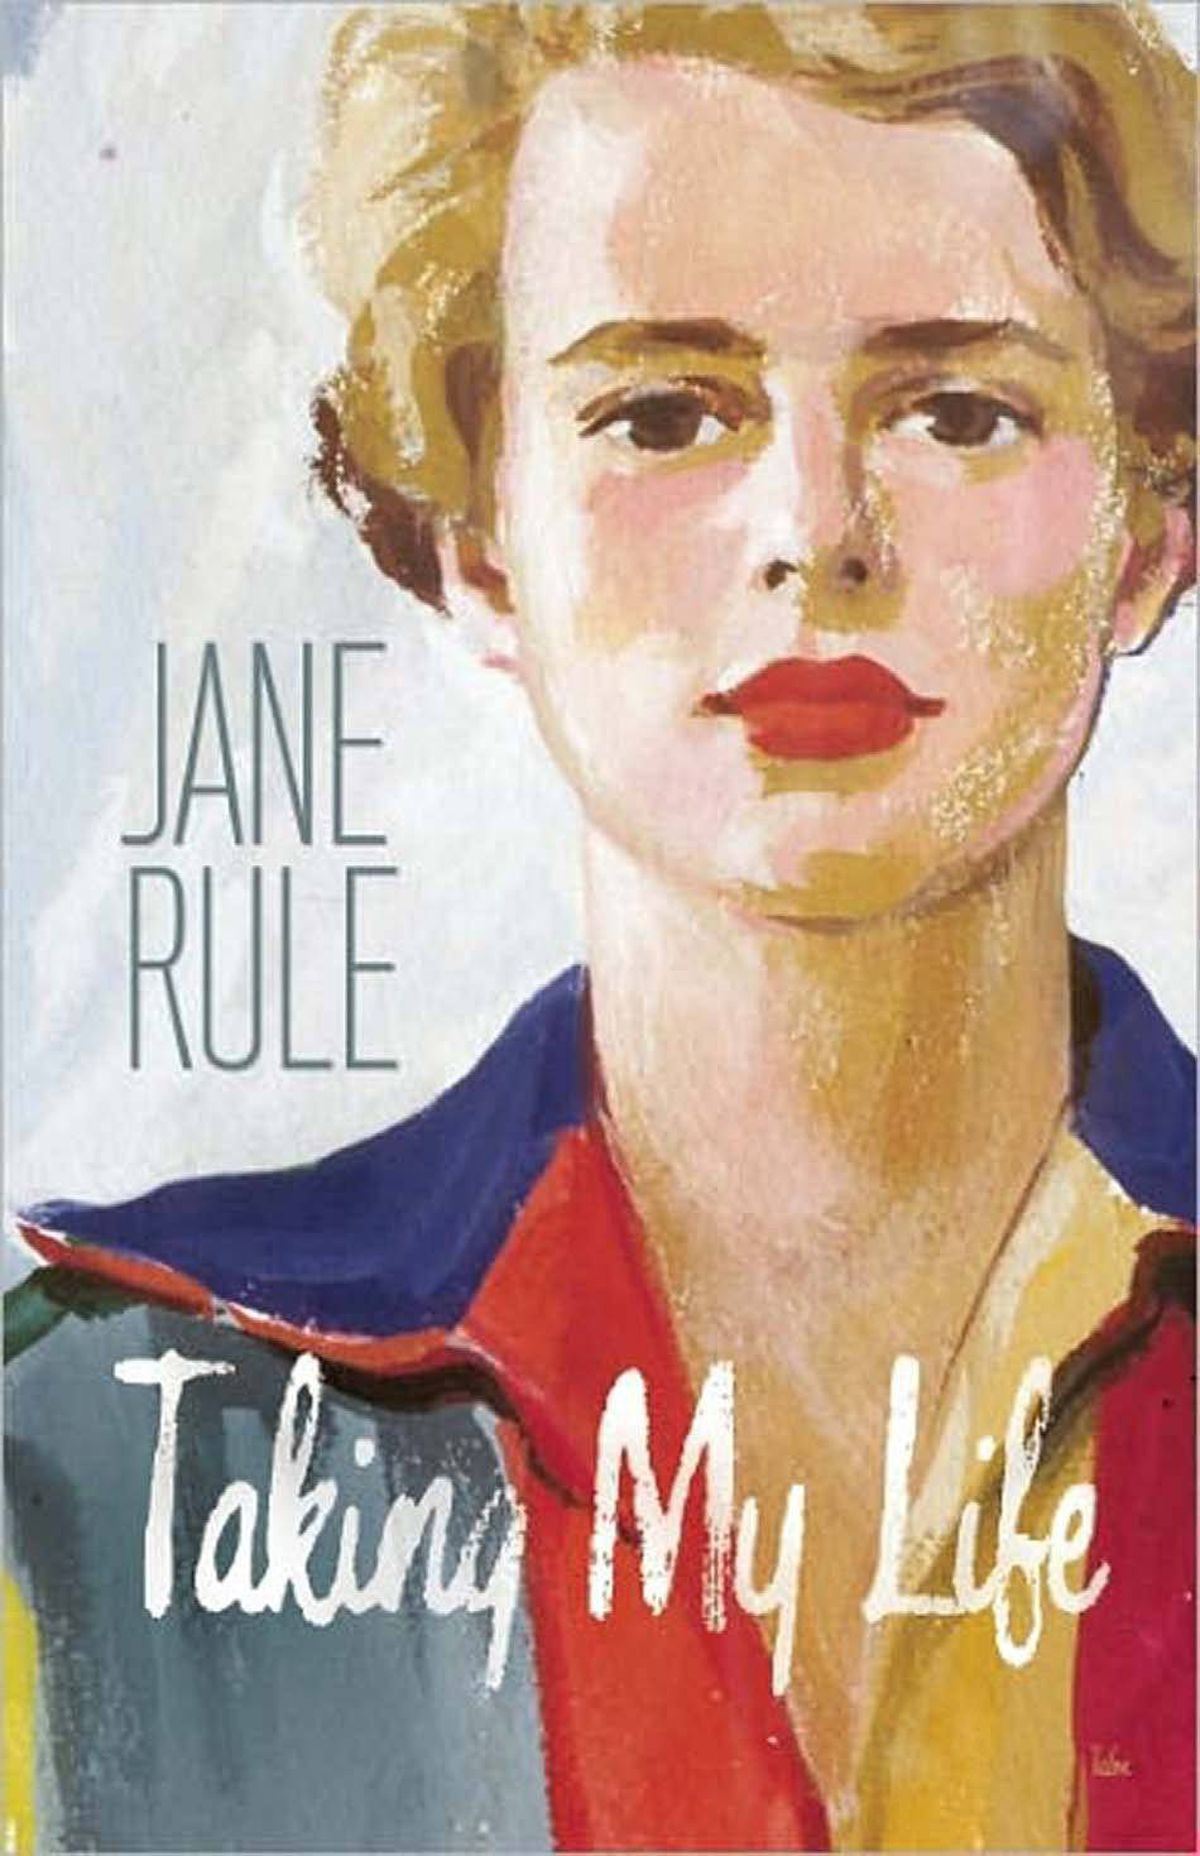 TAKING MY LIFE By Jane Rule (Talonbooks) In this absorbing posthumous memoir, Rule the realist has illuminated with insight, joyousness, tenderness and even pain the influences that were to shape her as a writer and as a sexual being. Her great openness about relationships, her insistence on the creation of community, her pursuit of truth, are very much in evidence. – M.A.C. Farrant